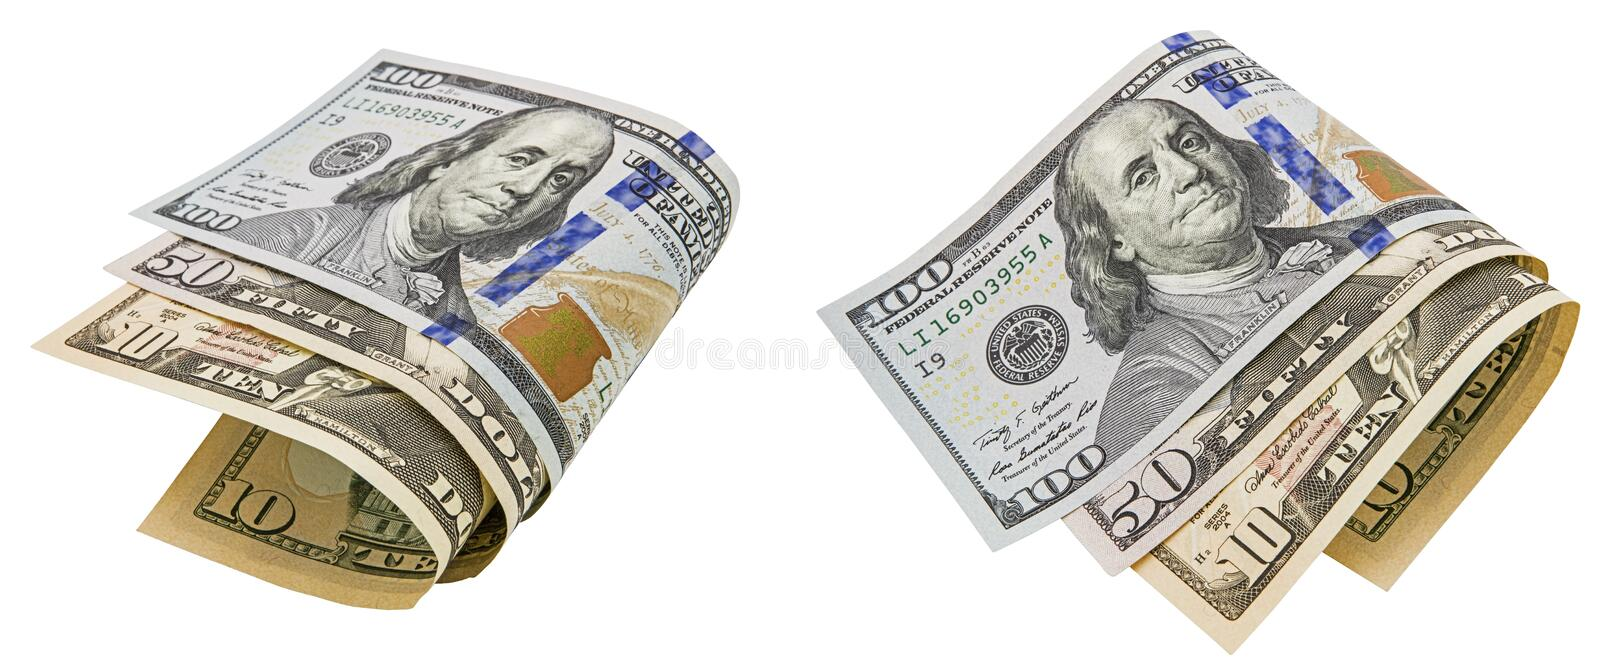 Banknotes folded rolled collage isolated white background royalty free stock photos